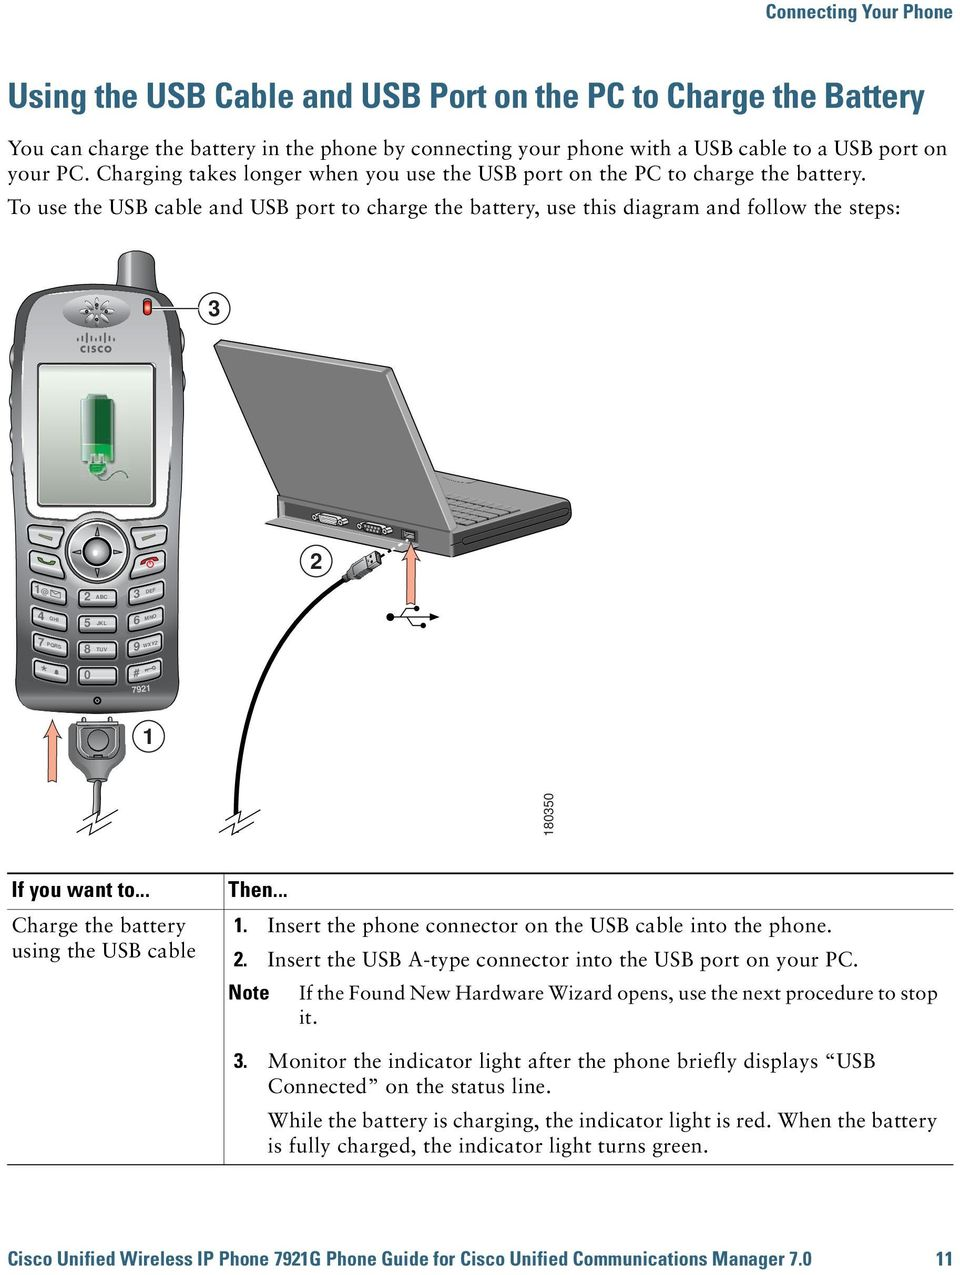 To use the USB cable and USB port to charge the battery, use this diagram and follow the steps: 3 2 1@ 4 7 * GHI PQRS 2 ABC 5 JKL 8 TUV 0 3 DEF 6 MNO 9 # WXYZ 7921 1 180350 Charge the battery using